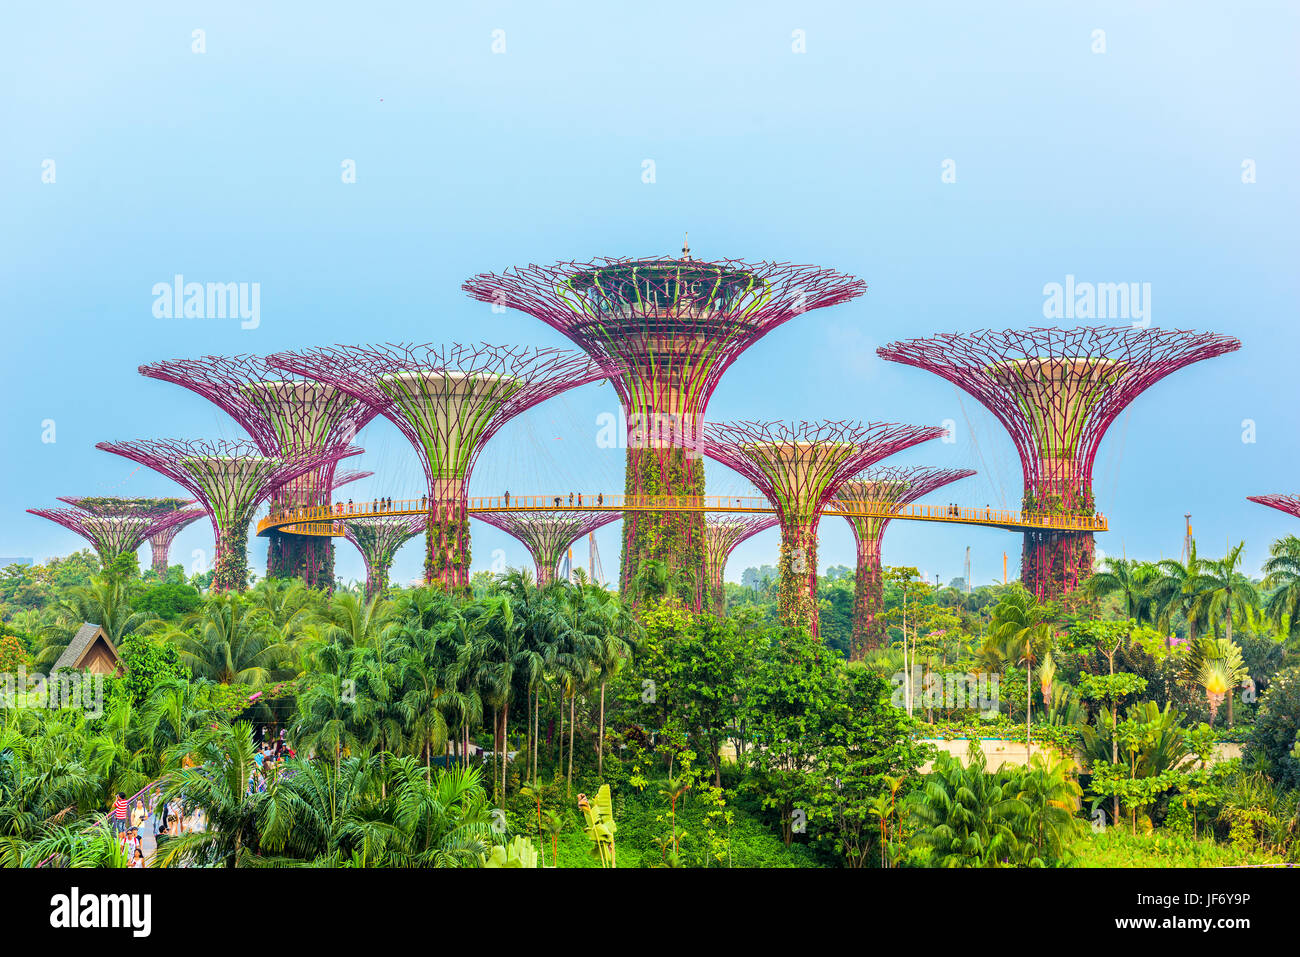 Singapour - septembre 5, 2015 : supertrees dans les jardins de la baie. Photo Stock